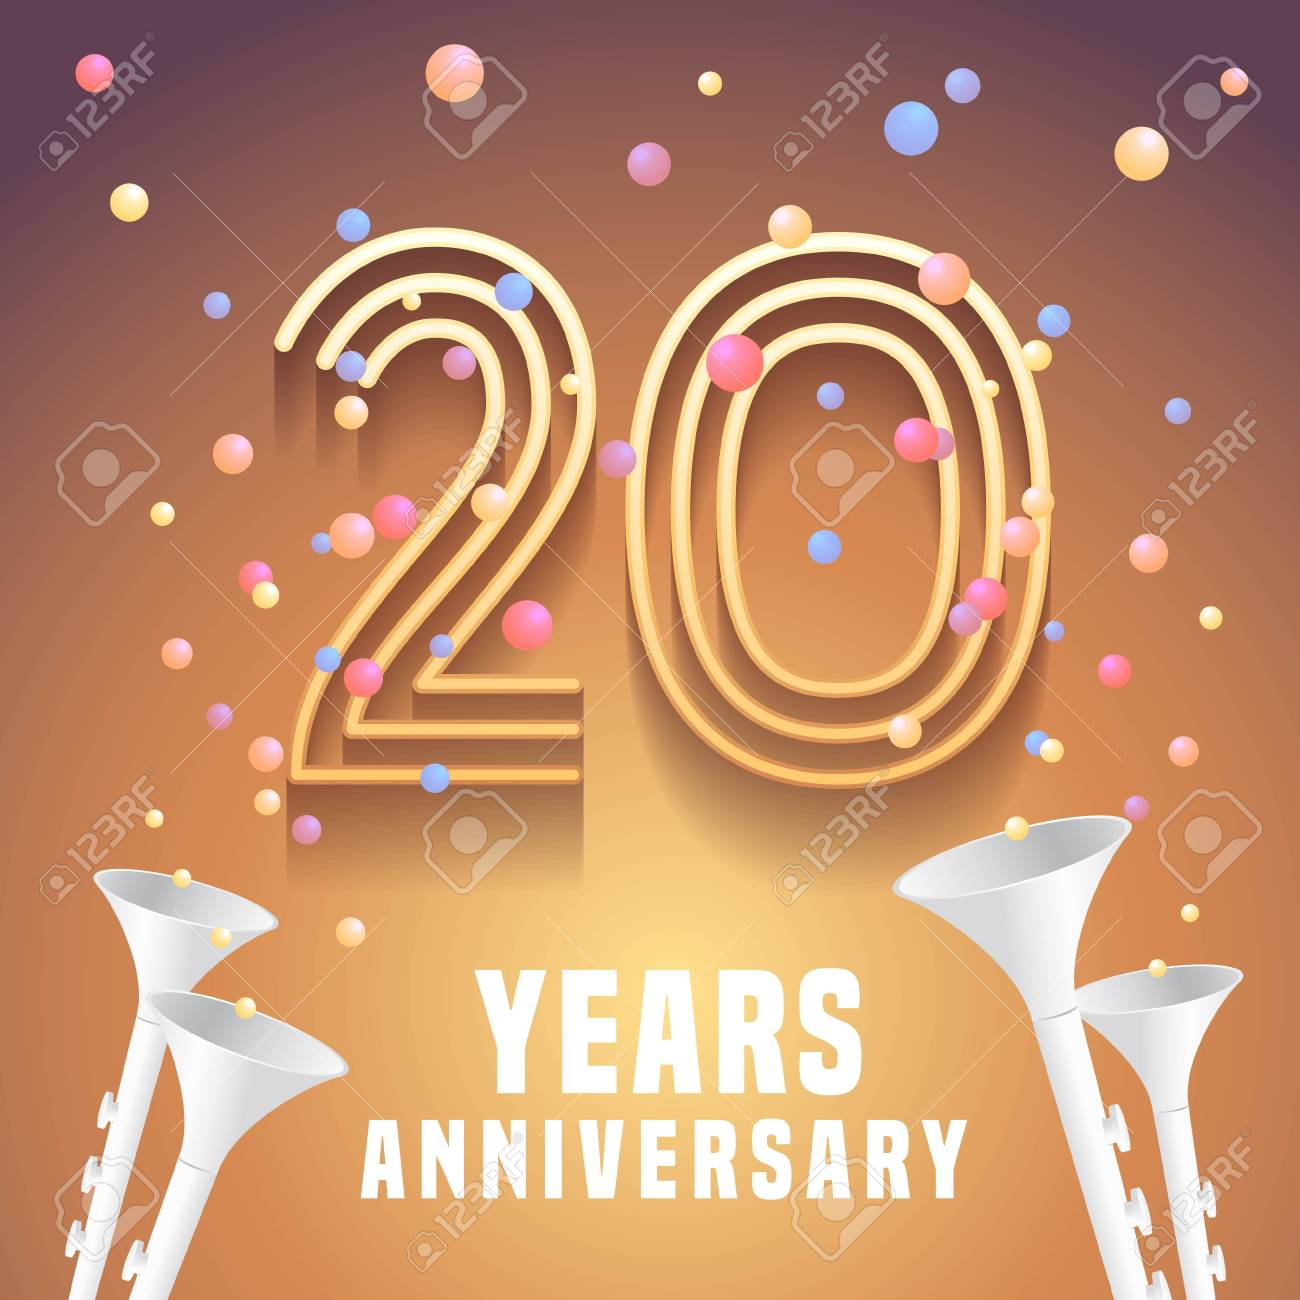 20 Years Anniversary Vector Icon Symbol Graphic Design Element